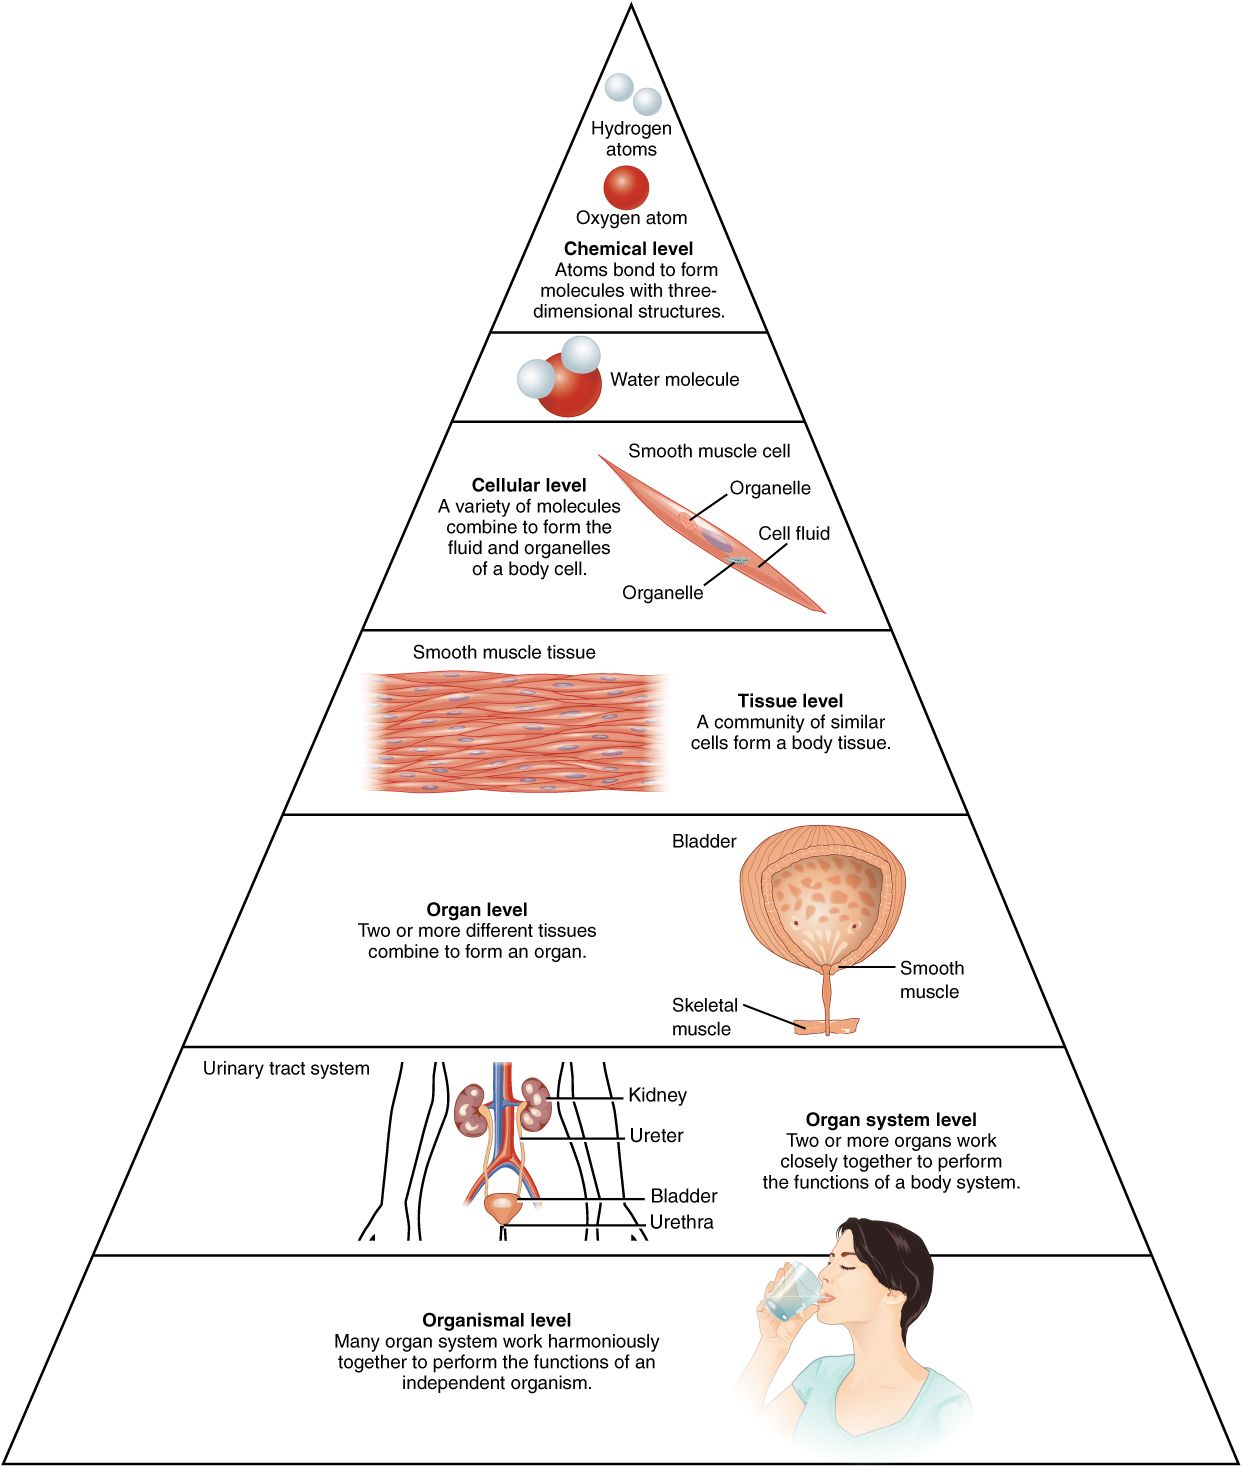 The Organization Of The Body Often Is Discussed In Terms Of Six Distinct Levels Anatomy And Physiology Human Anatomy And Physiology Human Body Anatomy